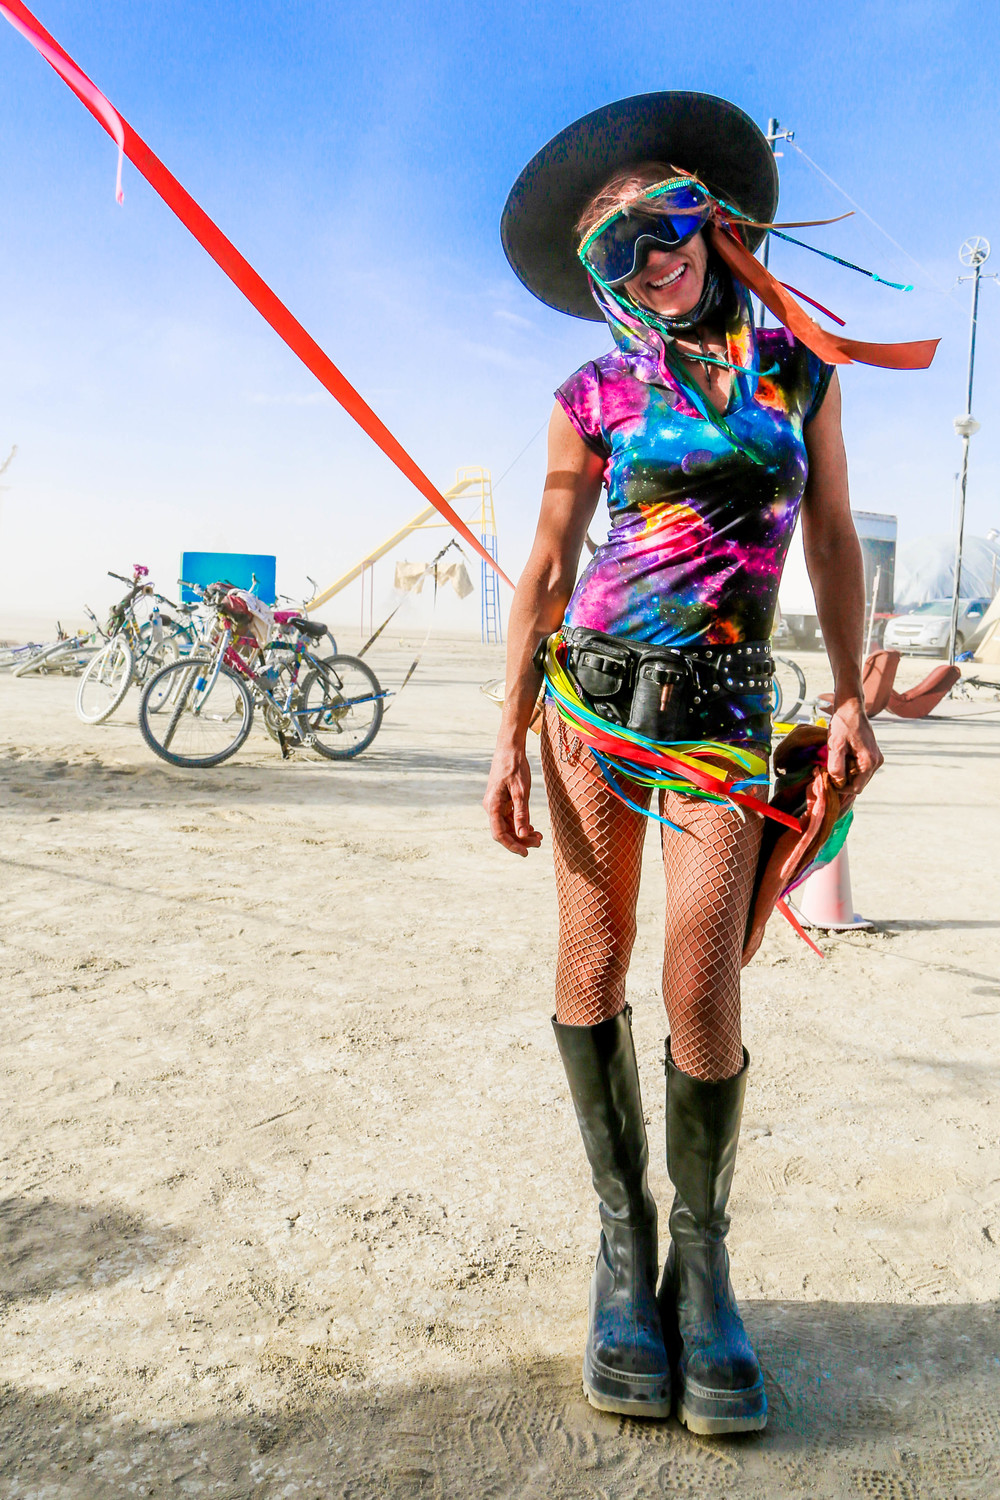 It's hard to get to Burning Man, it's hard to be there, and it's hard to return to the default world when it's over.